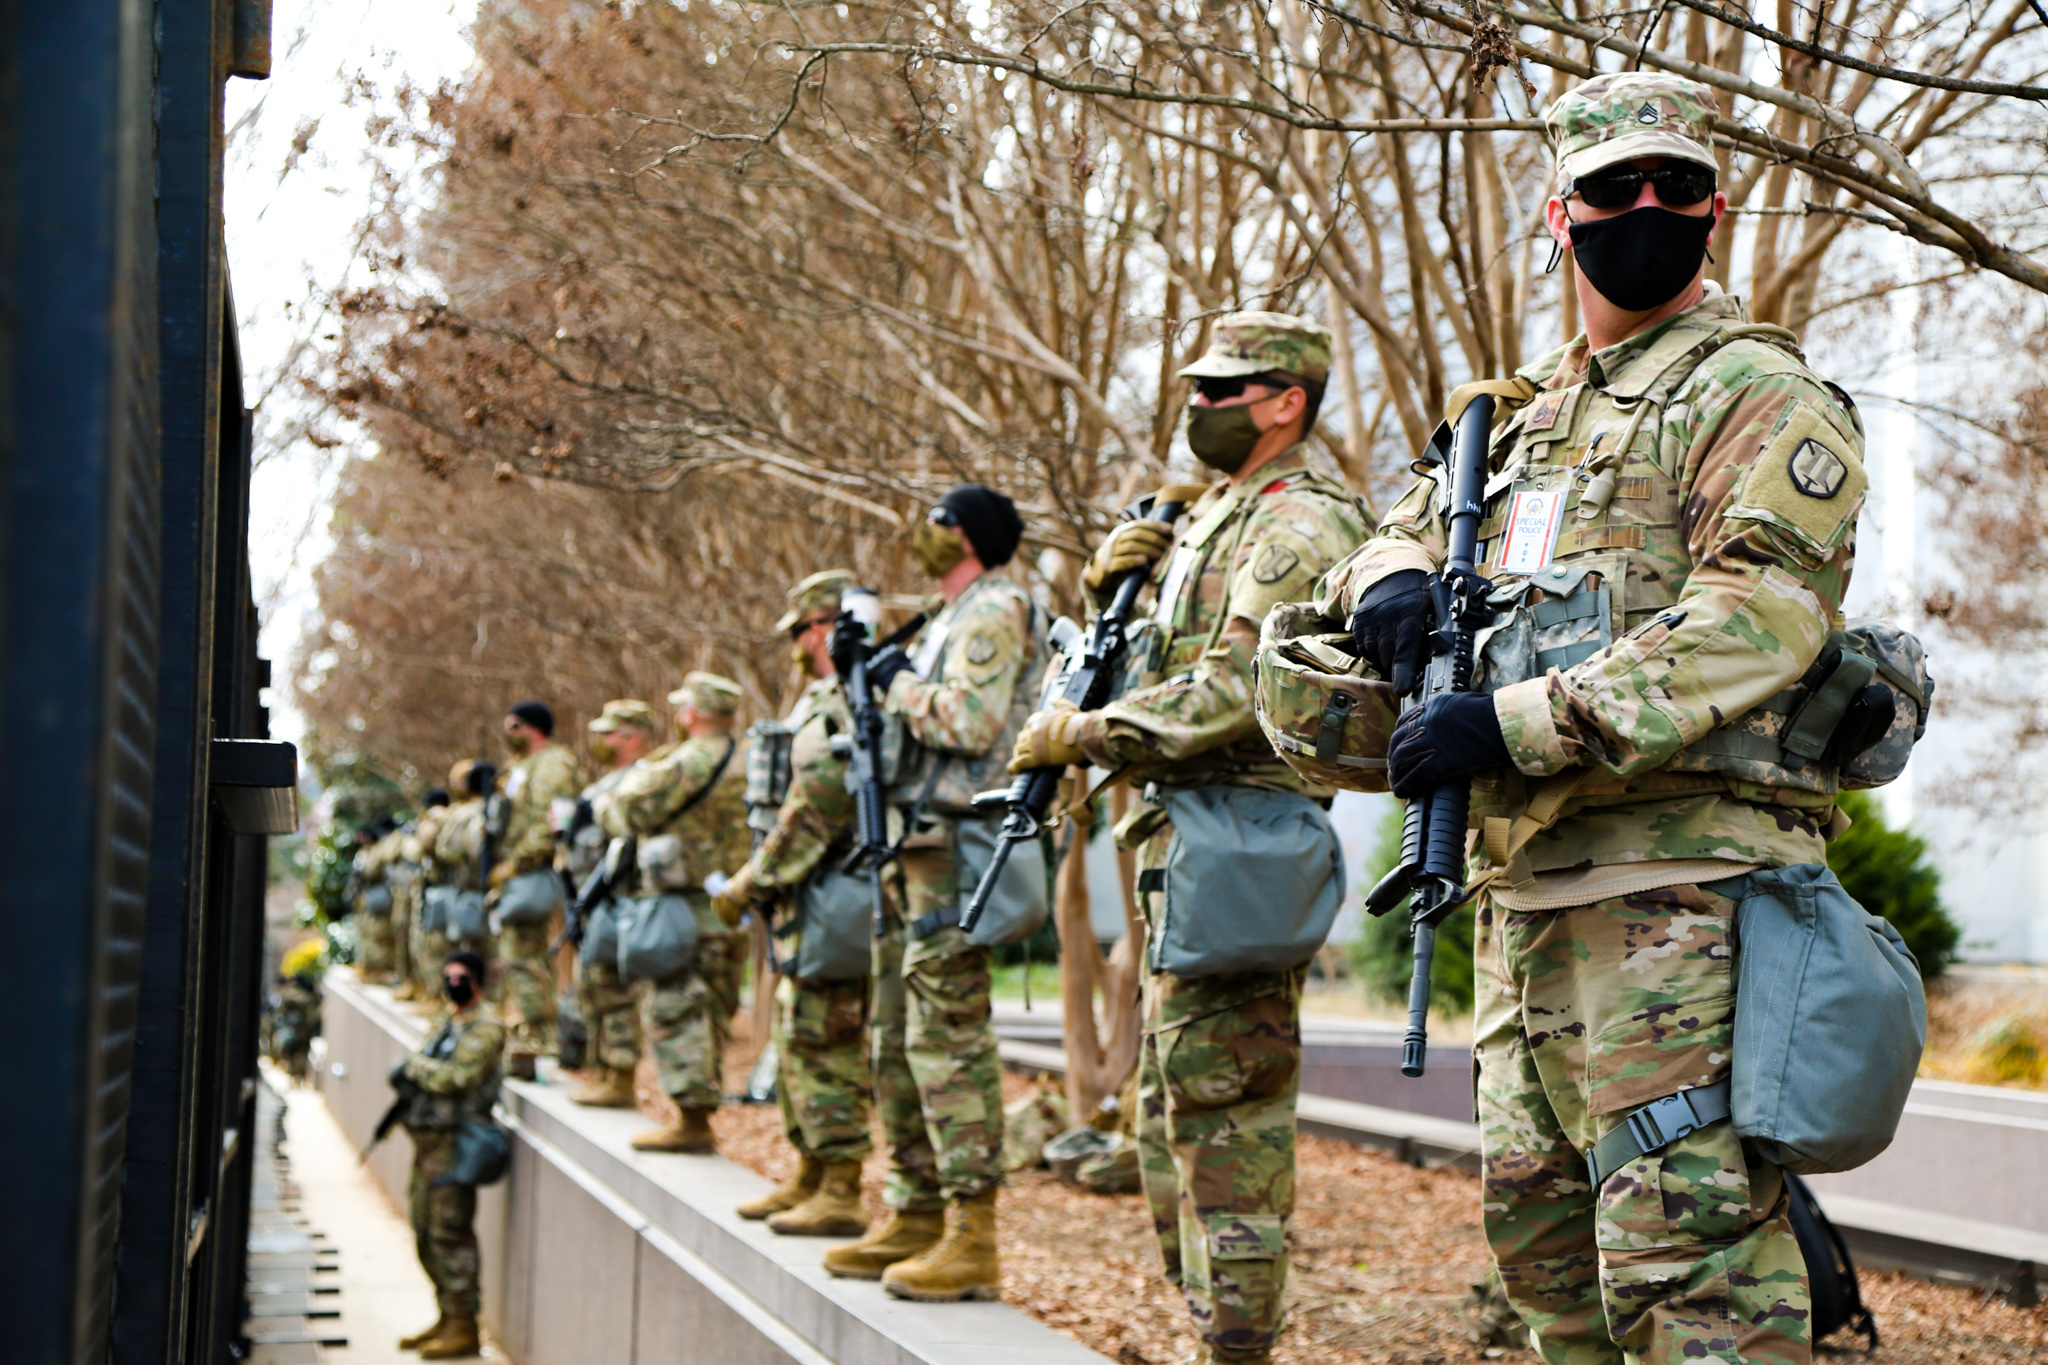 U.S. Soldiers with the Utah National Guard stand watch in Washington D.C., Jan 18, 2021. At least 25,000 National Guard men and women have been authorized to conduct security, communication and logistical missions in support of federal and District authorities leading up and through the 59thPresidential Inauguration. (U.S. Army National Guard photo by Spc. Christopher Hall)